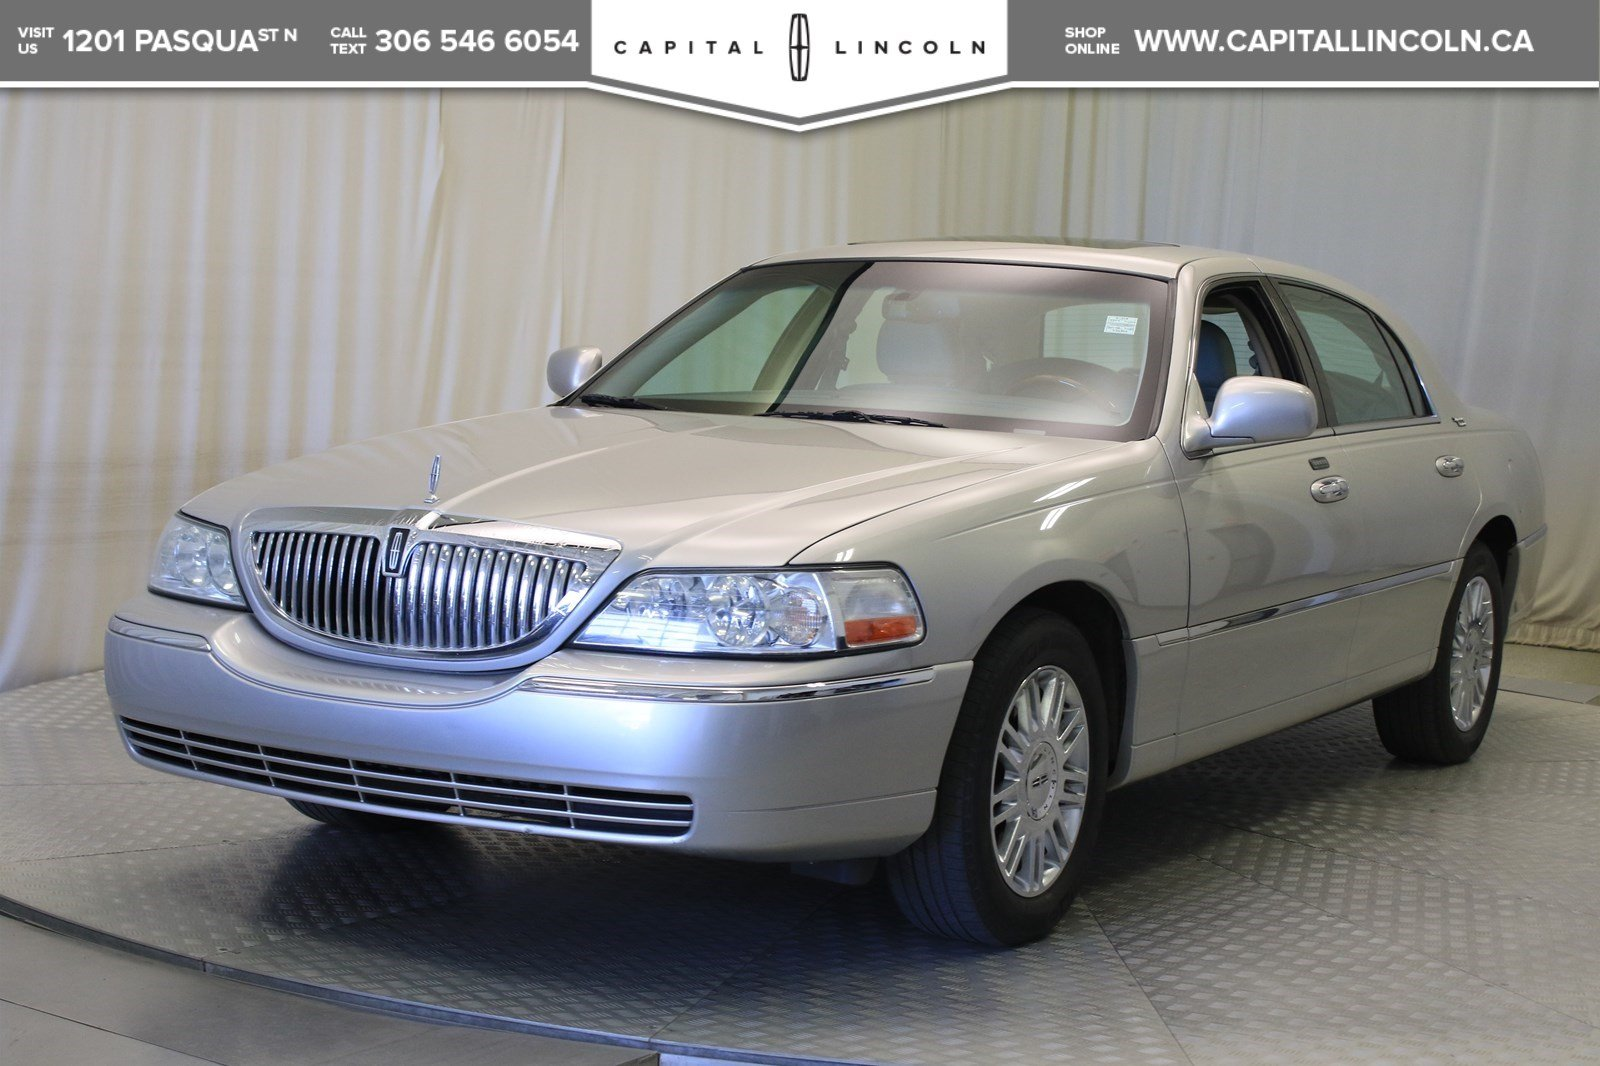 Certified Pre-Owned 2007 Lincoln Town Car Signature Limited